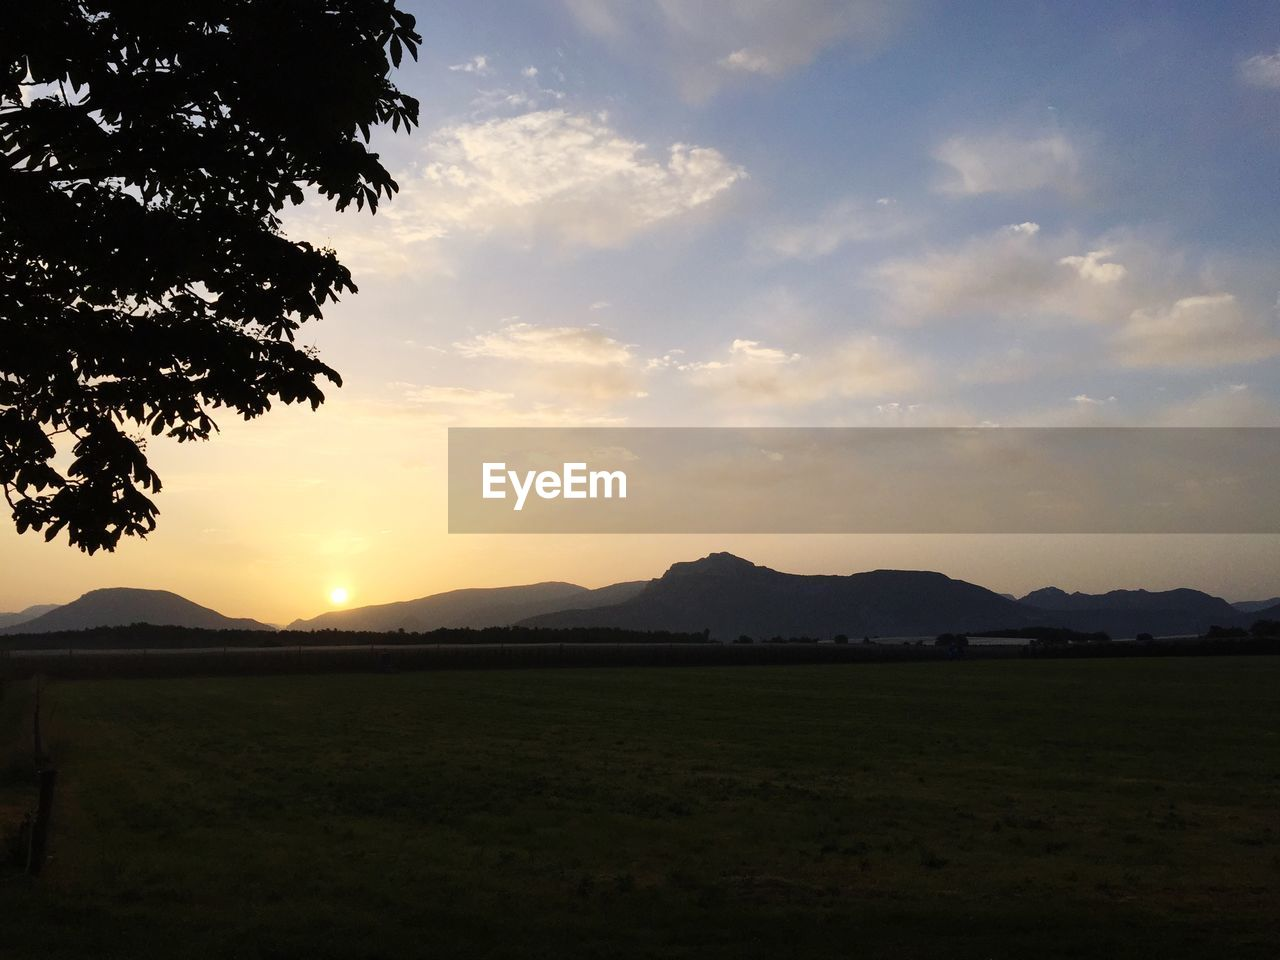 sky, scenics - nature, beauty in nature, tranquil scene, sunset, mountain, tranquility, environment, cloud - sky, plant, nature, landscape, land, no people, silhouette, field, mountain range, non-urban scene, grass, idyllic, outdoors